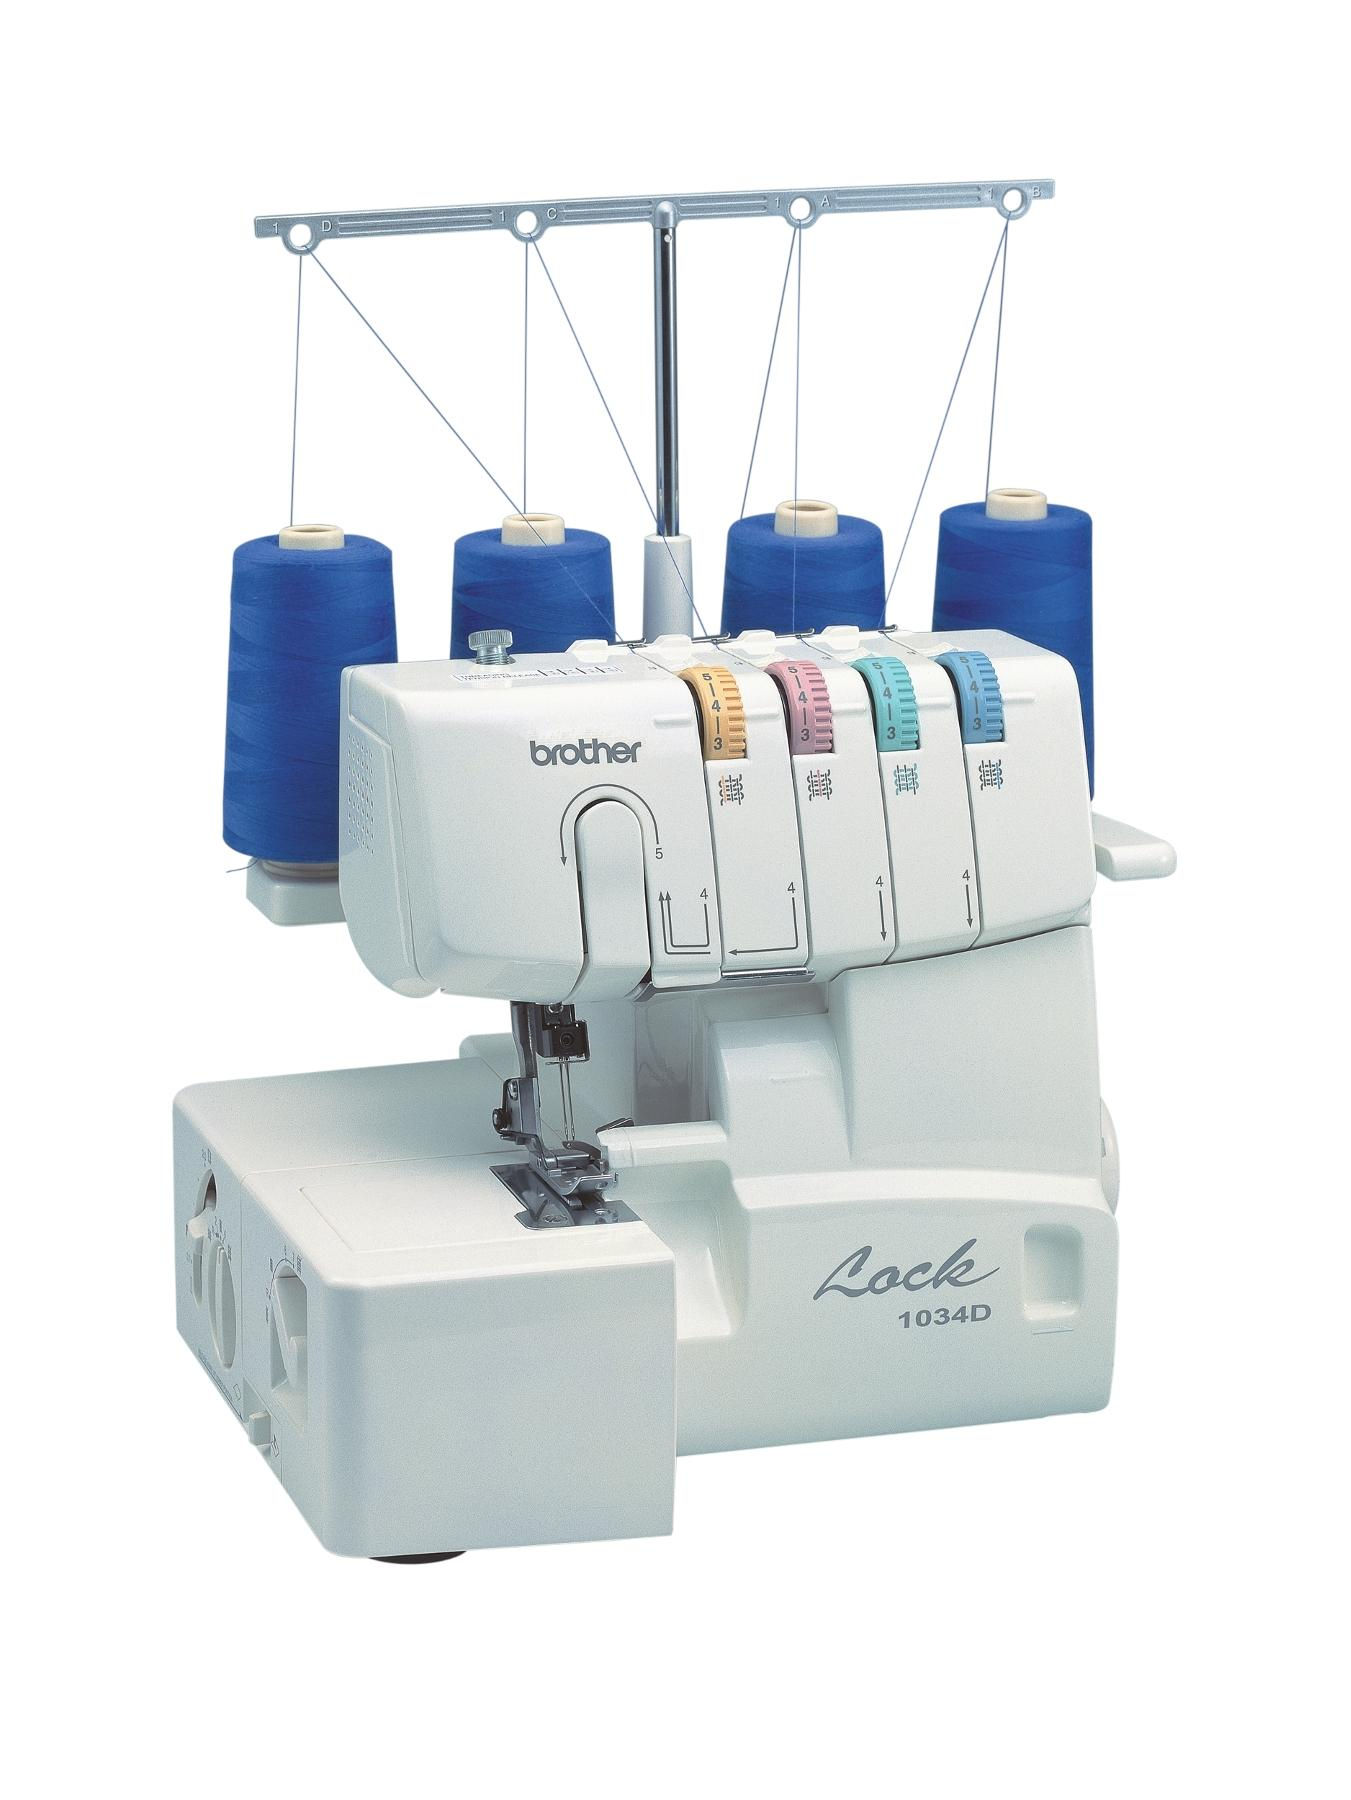 M1034D Overlocker Sewing Machine